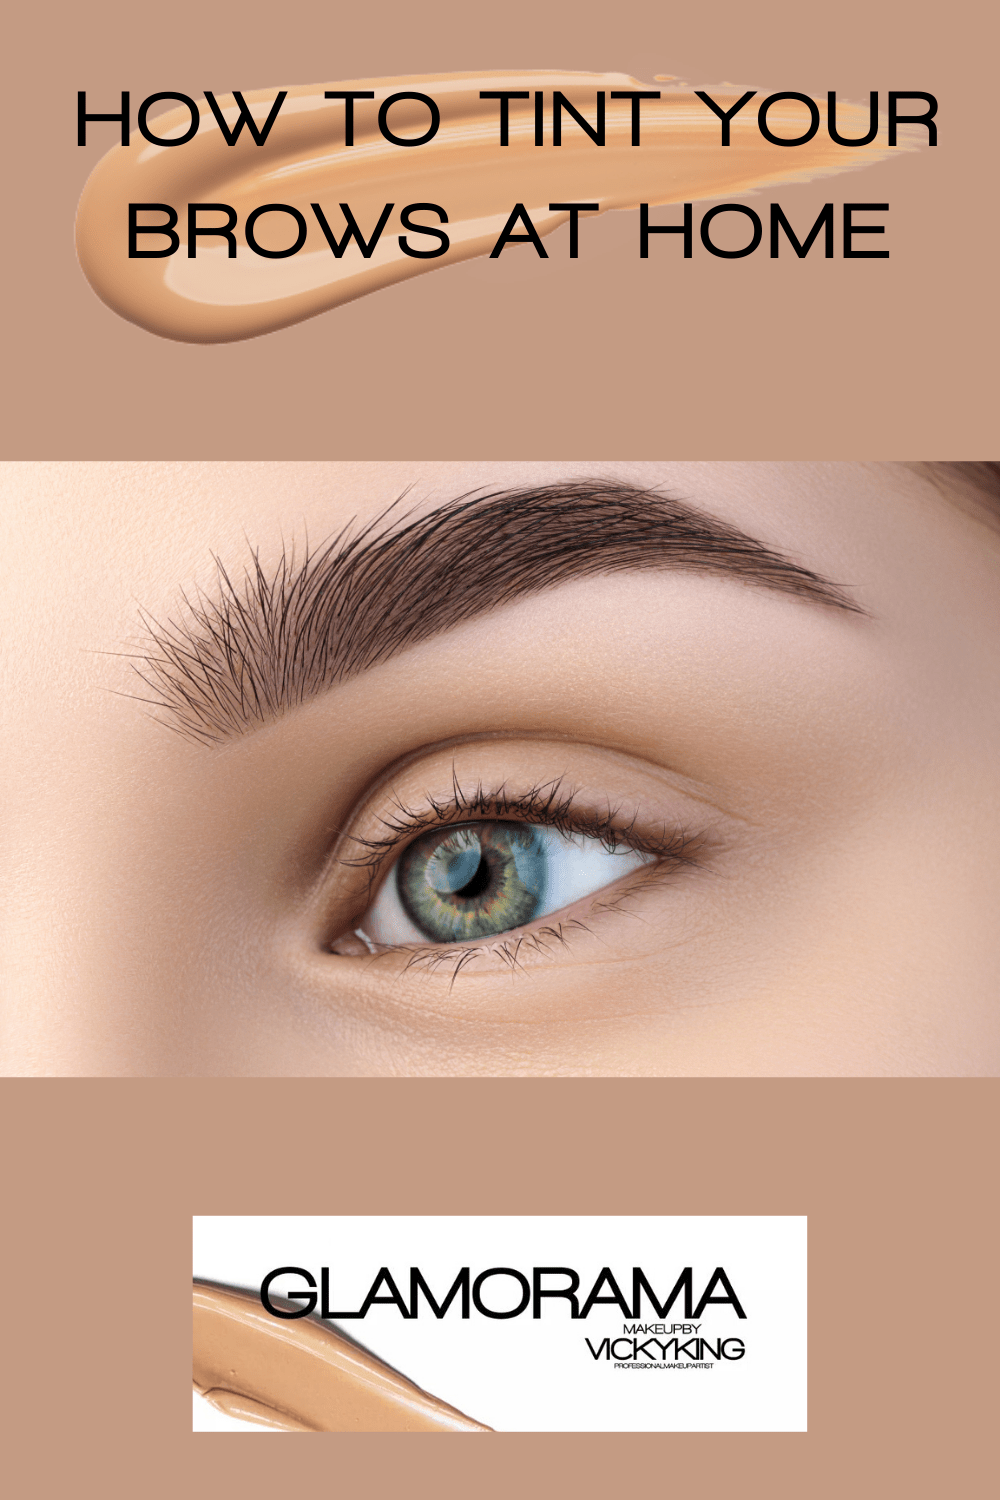 How to tint your brows at home